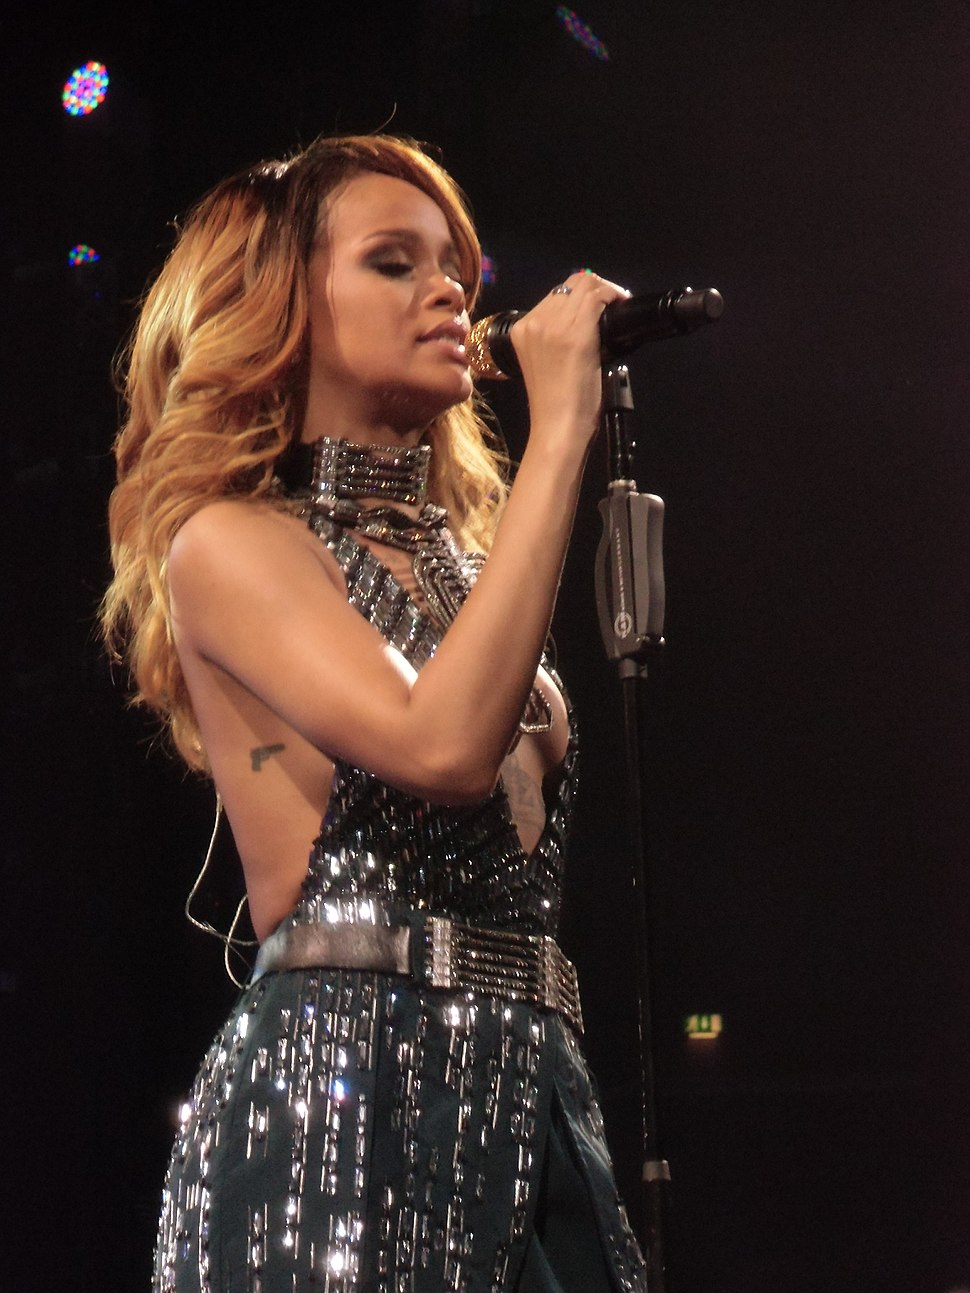 A dark blonde woman wearing a grayish shining outfit is performing